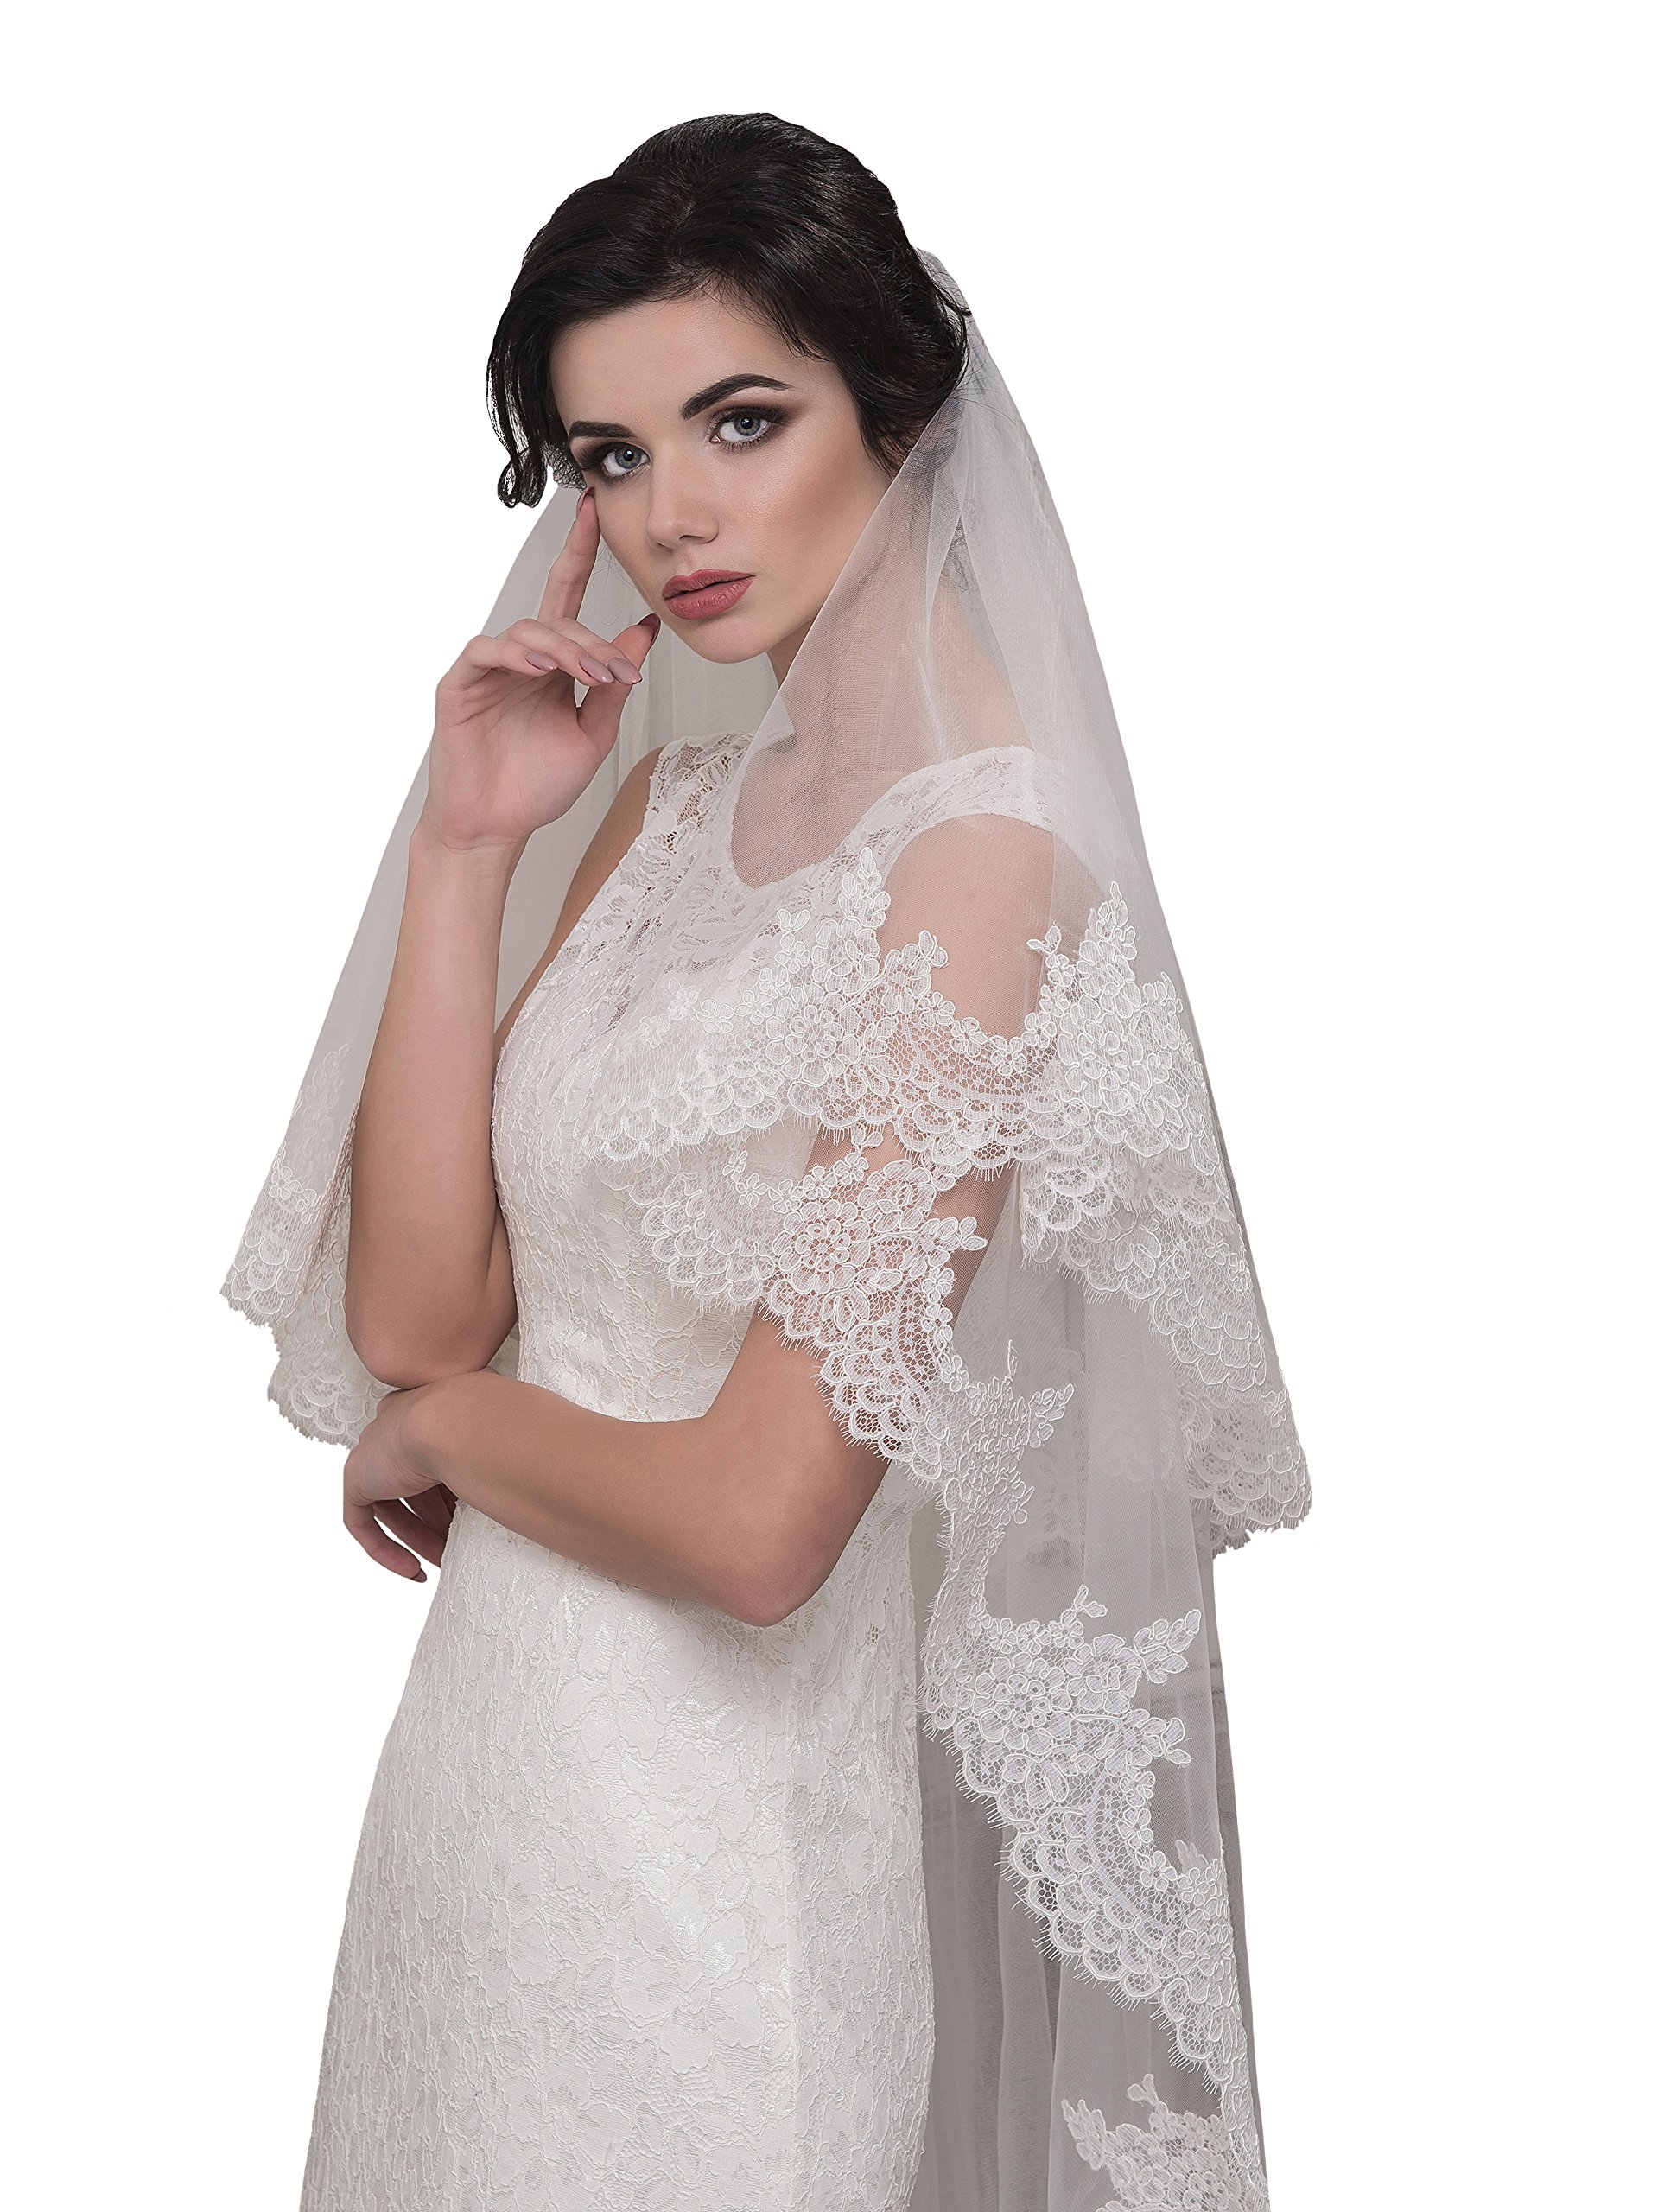 Bridal Veil Chloe from NYC Bride collection (short 30'', white)